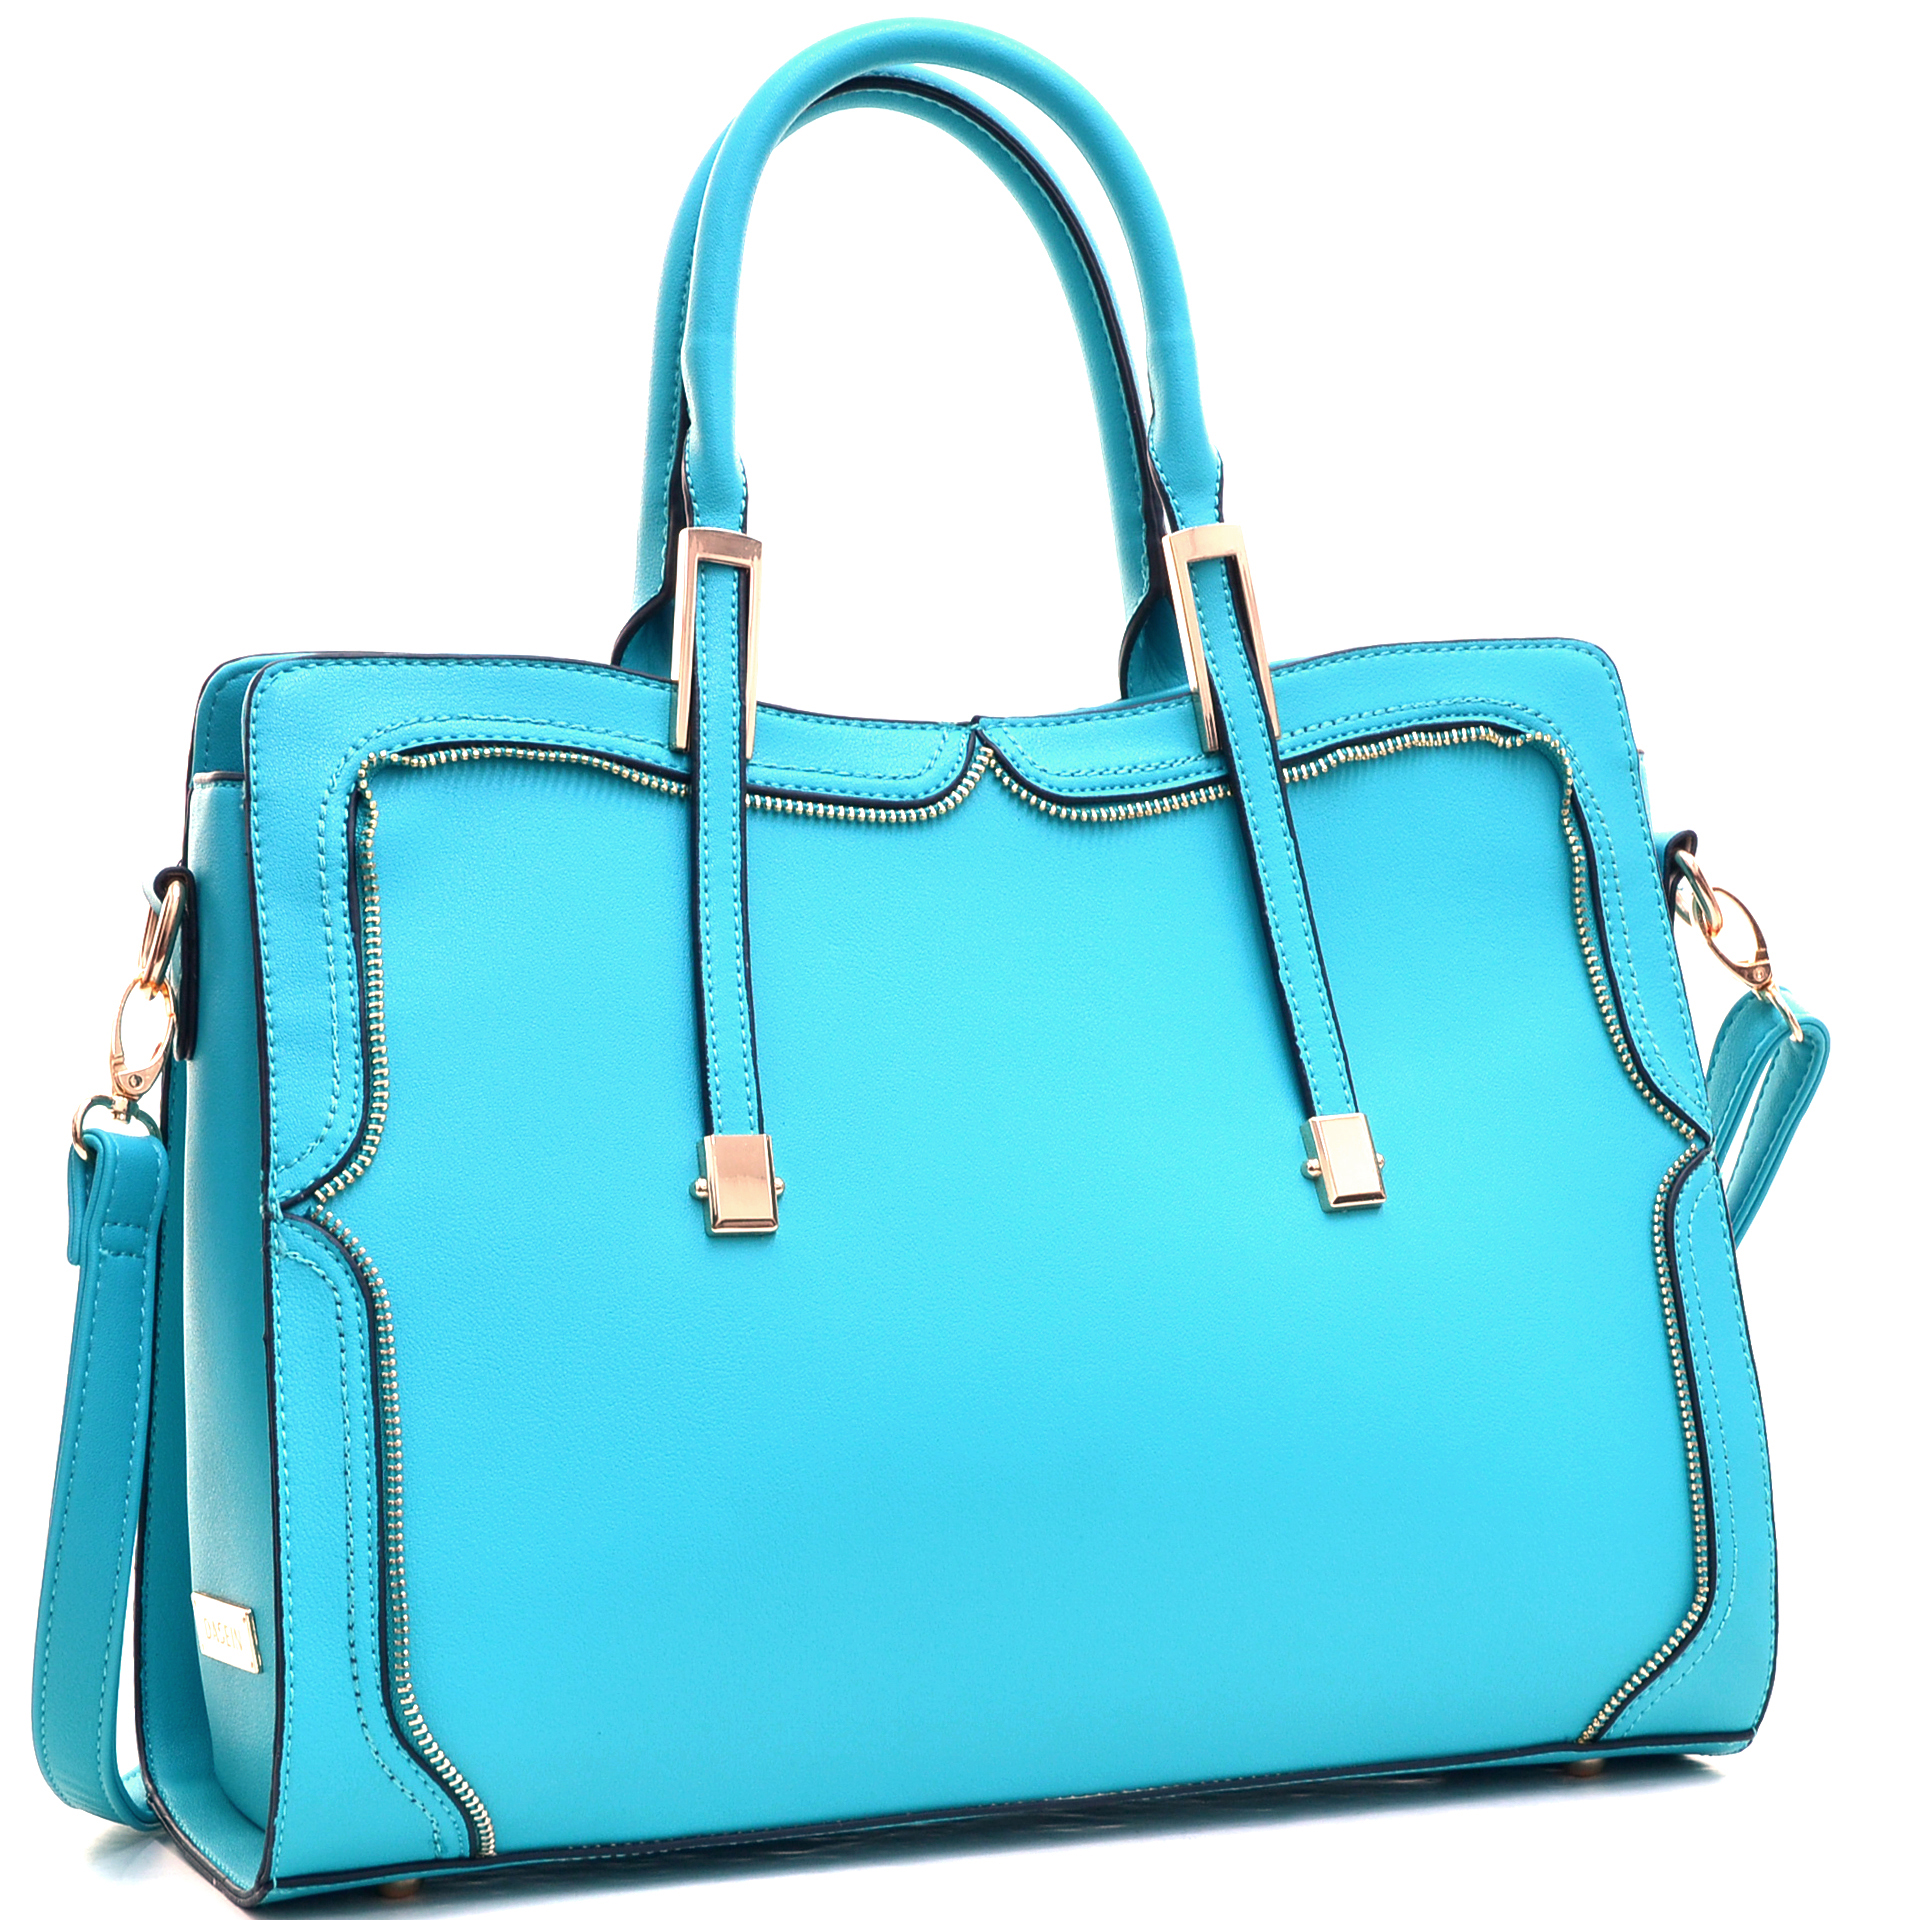 Women's Satchel with Metal and Zipper Detail